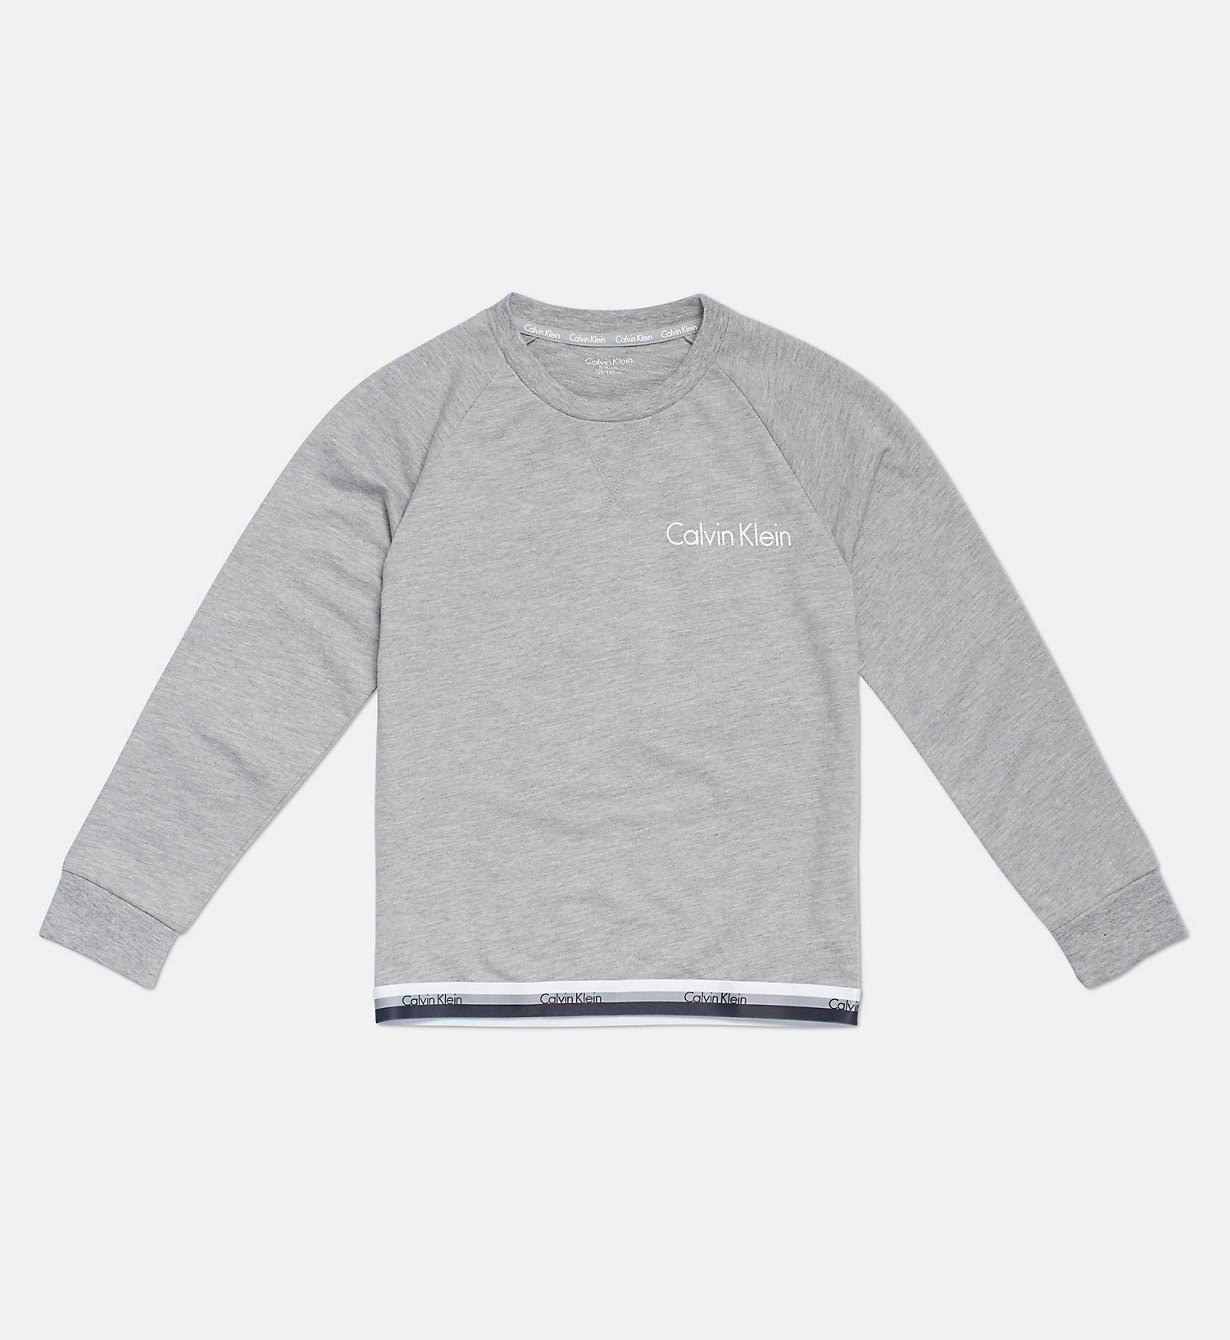 Long Years Klein Sleeve Heather Calvin Grey 12 10 Branded Tee IHwqgpf